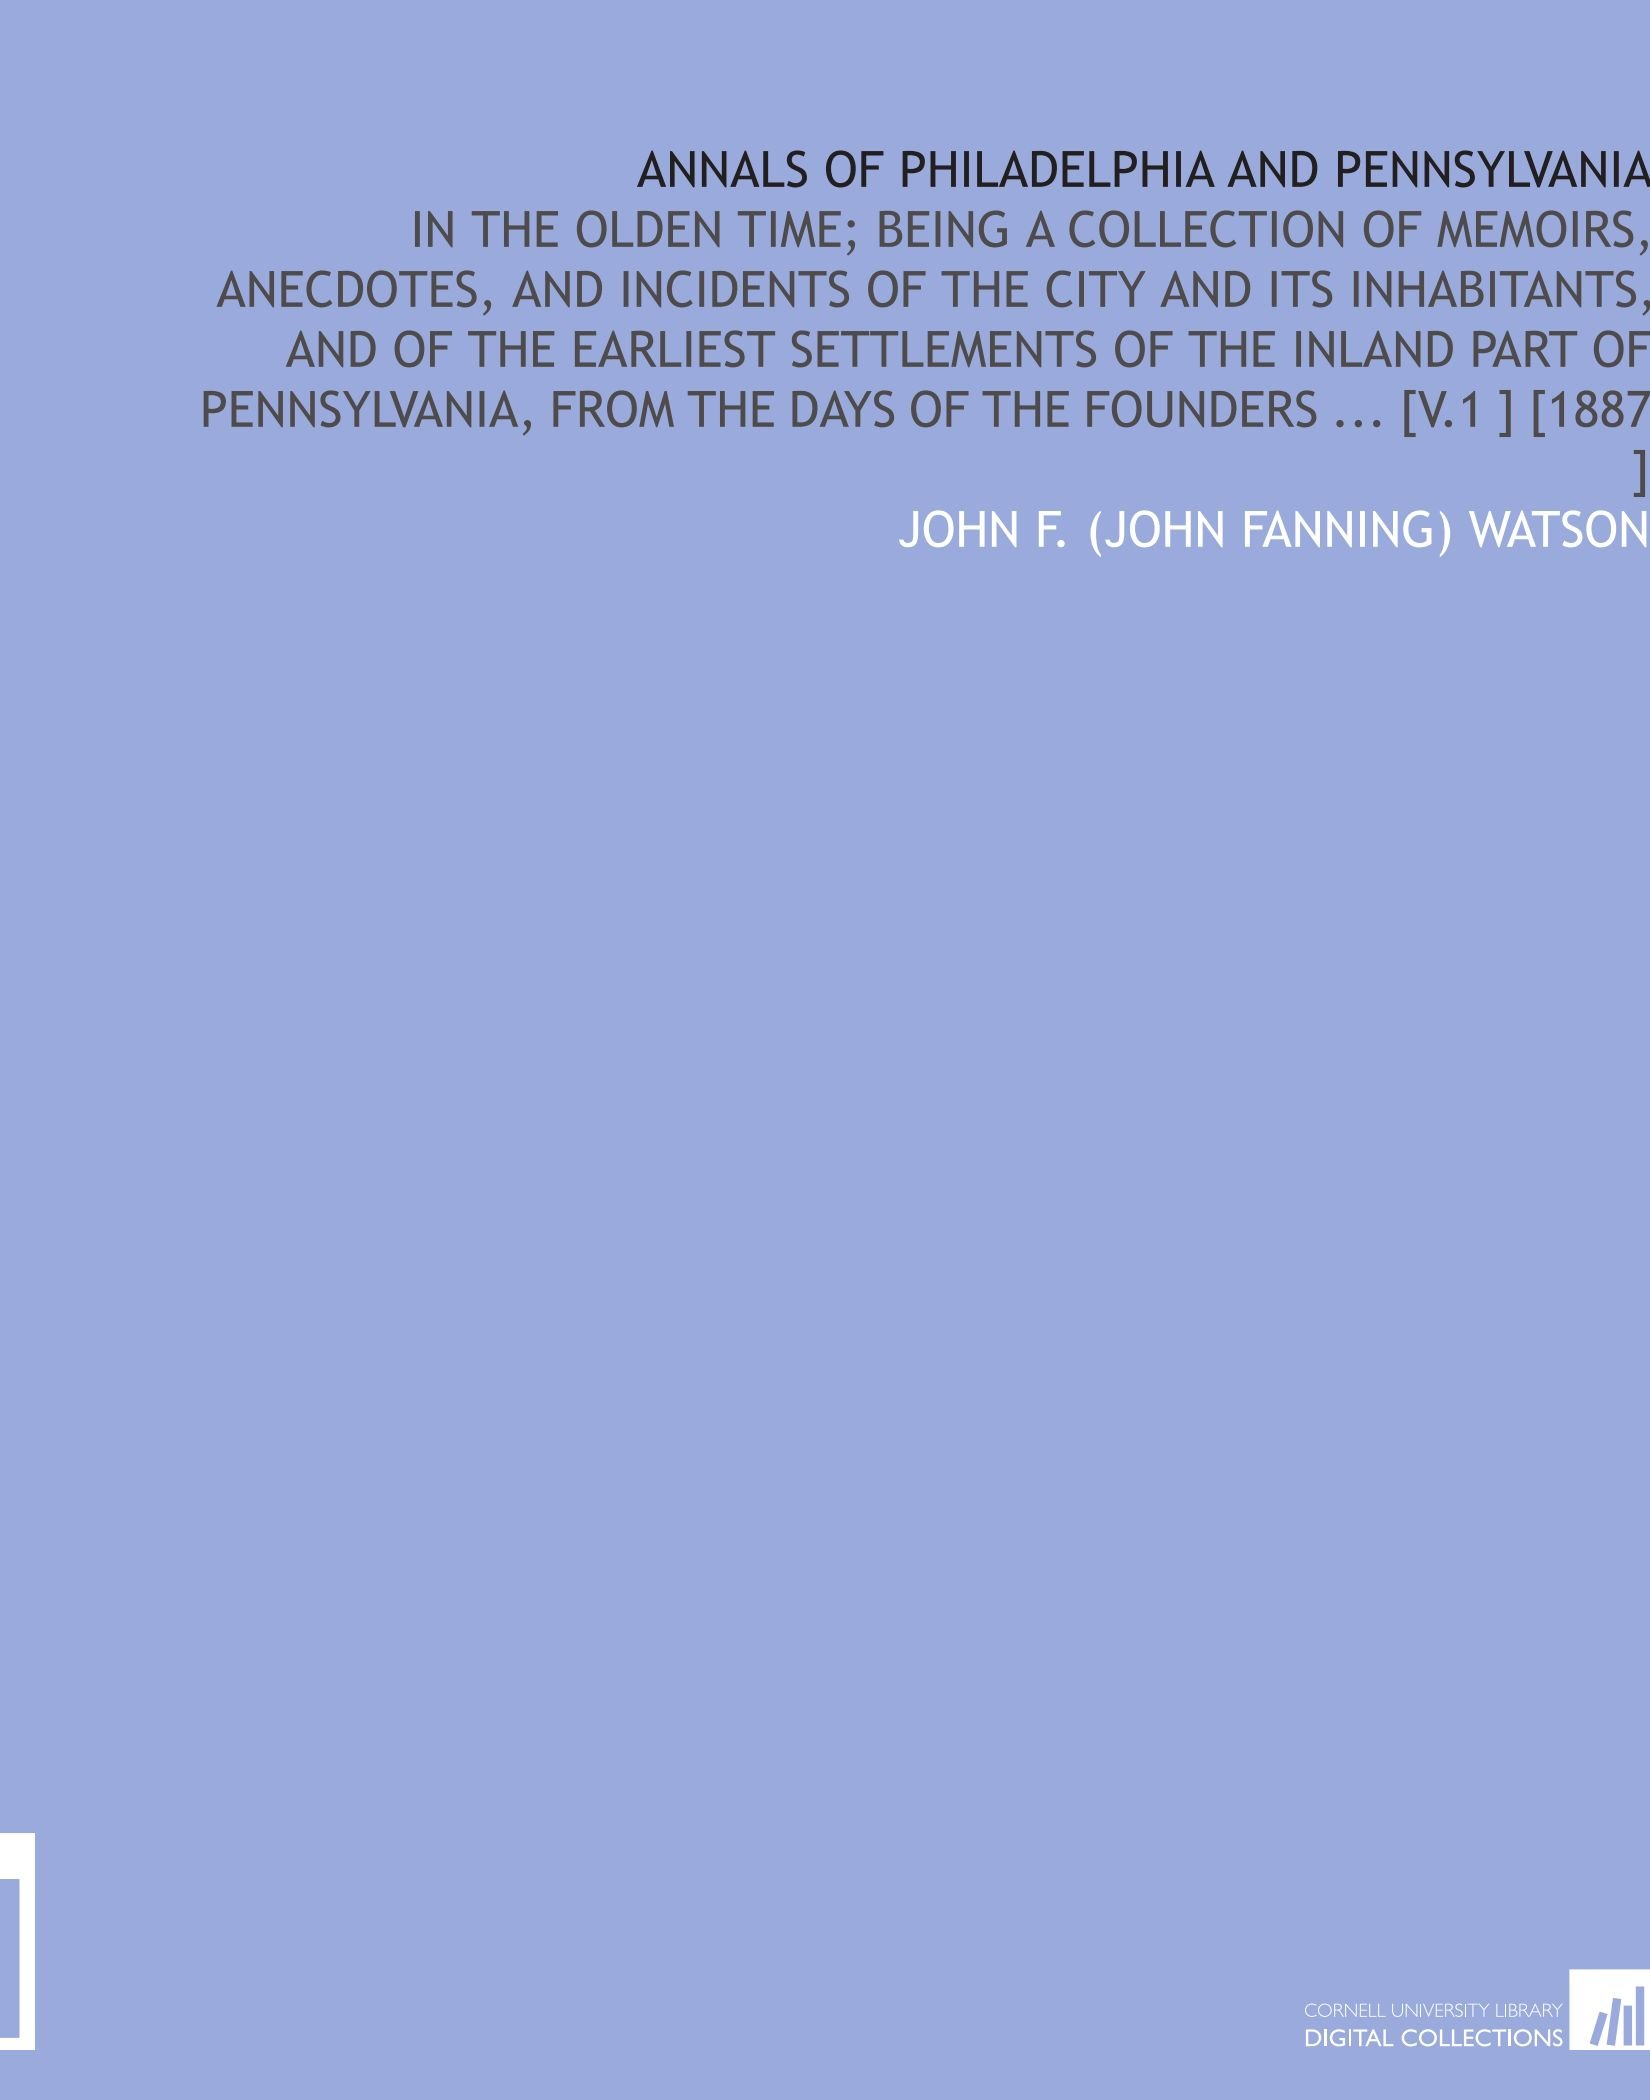 Annals of Philadelphia and Pennsylvania: In the Olden Time; Being a Collection of Memoirs, Anecdotes, and Incidents of the City and Its Inhabitants, ... the Days of the Founders ... [V.1 ] [1887 ] PDF